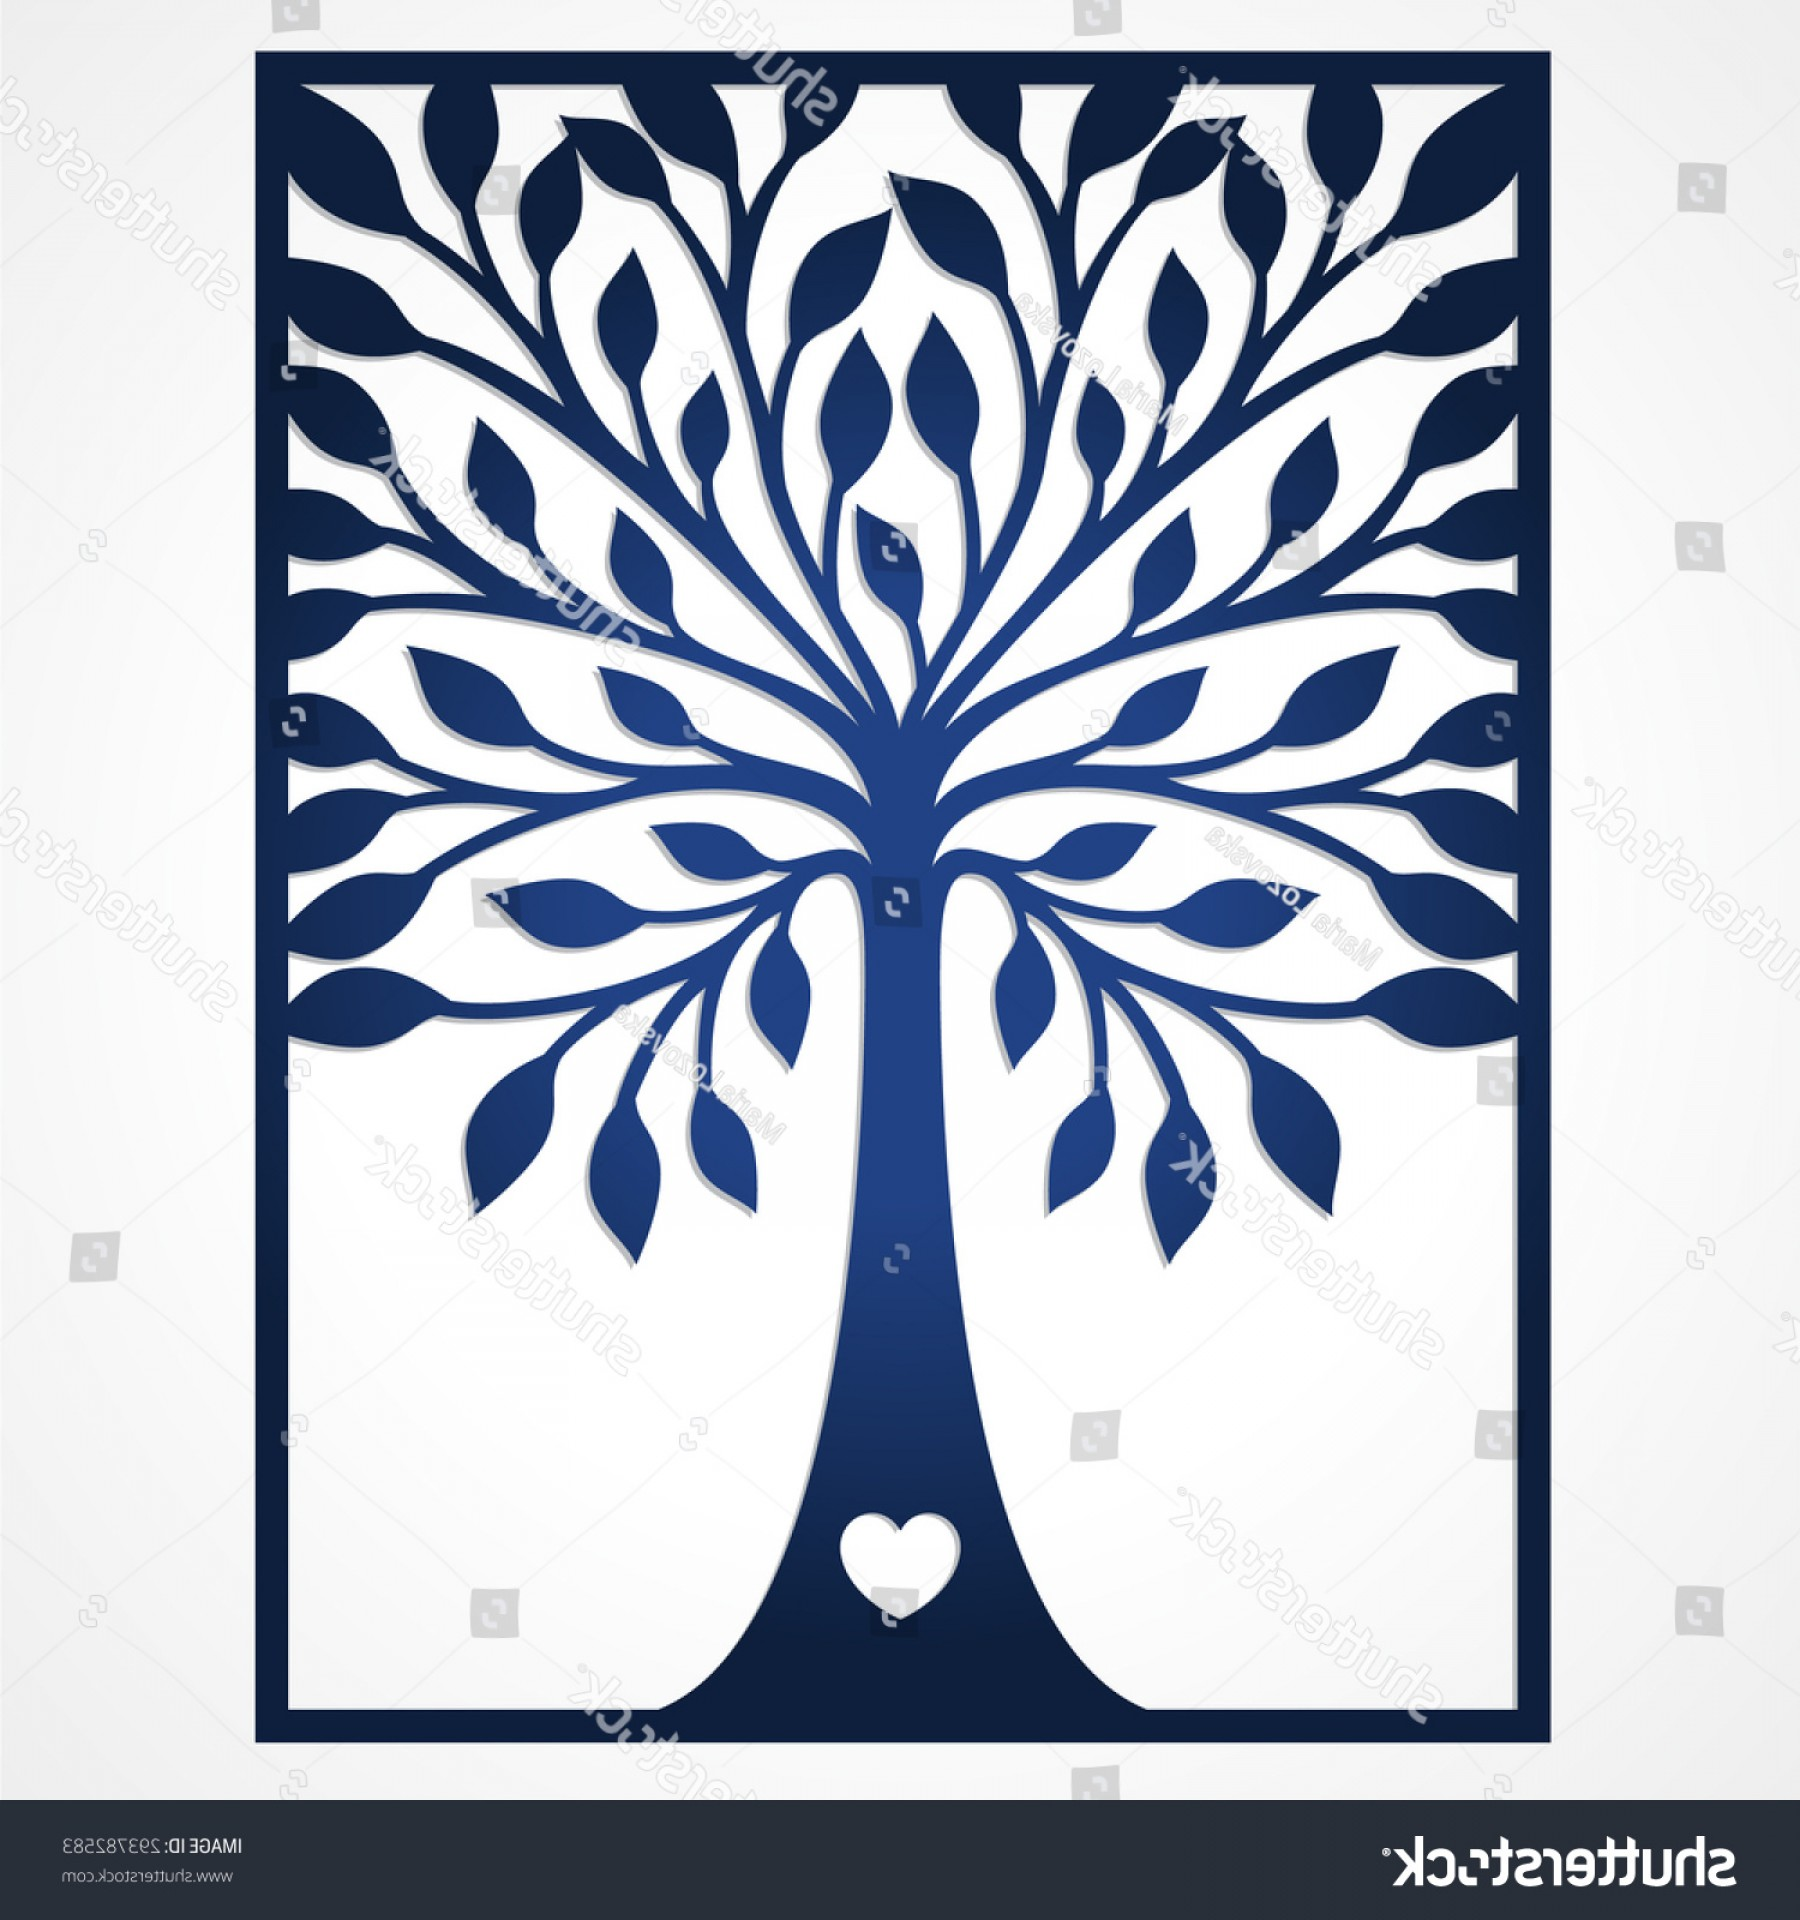 Wood Cutting Vector: Shutterstock Abstract Frame With Tree May Be Used